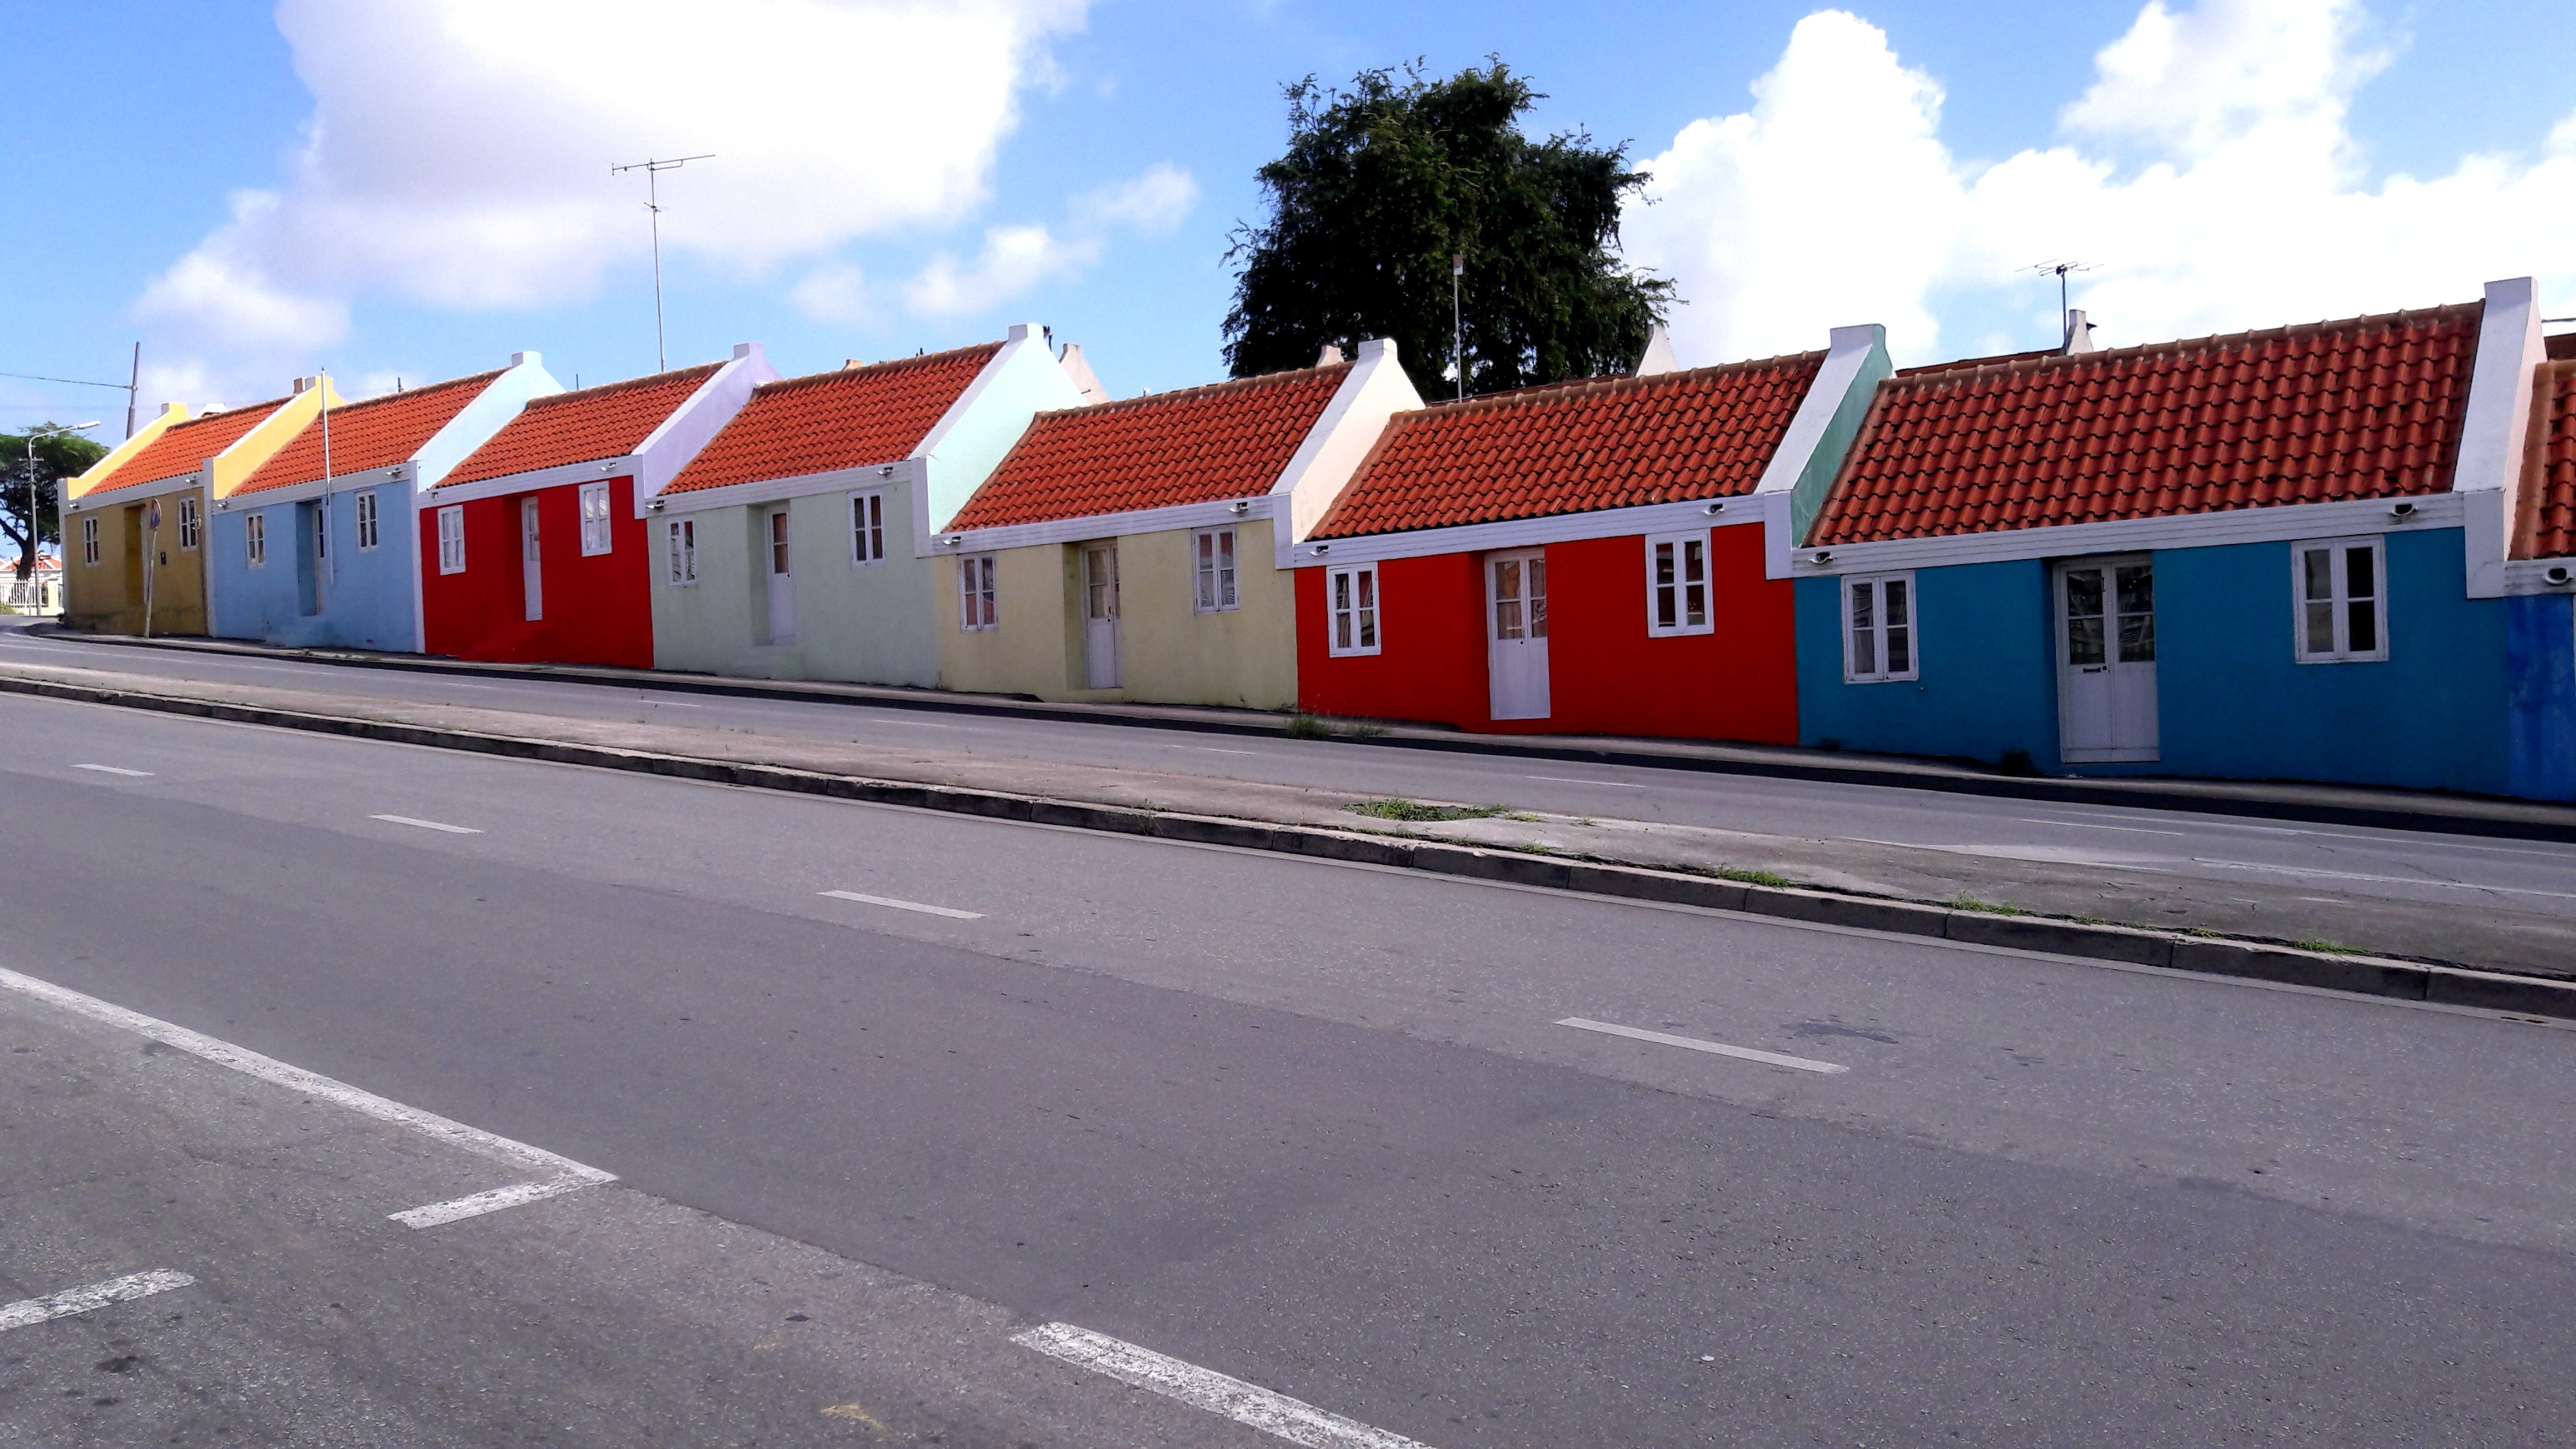 vibrant-colors-willemstad-curacao-1